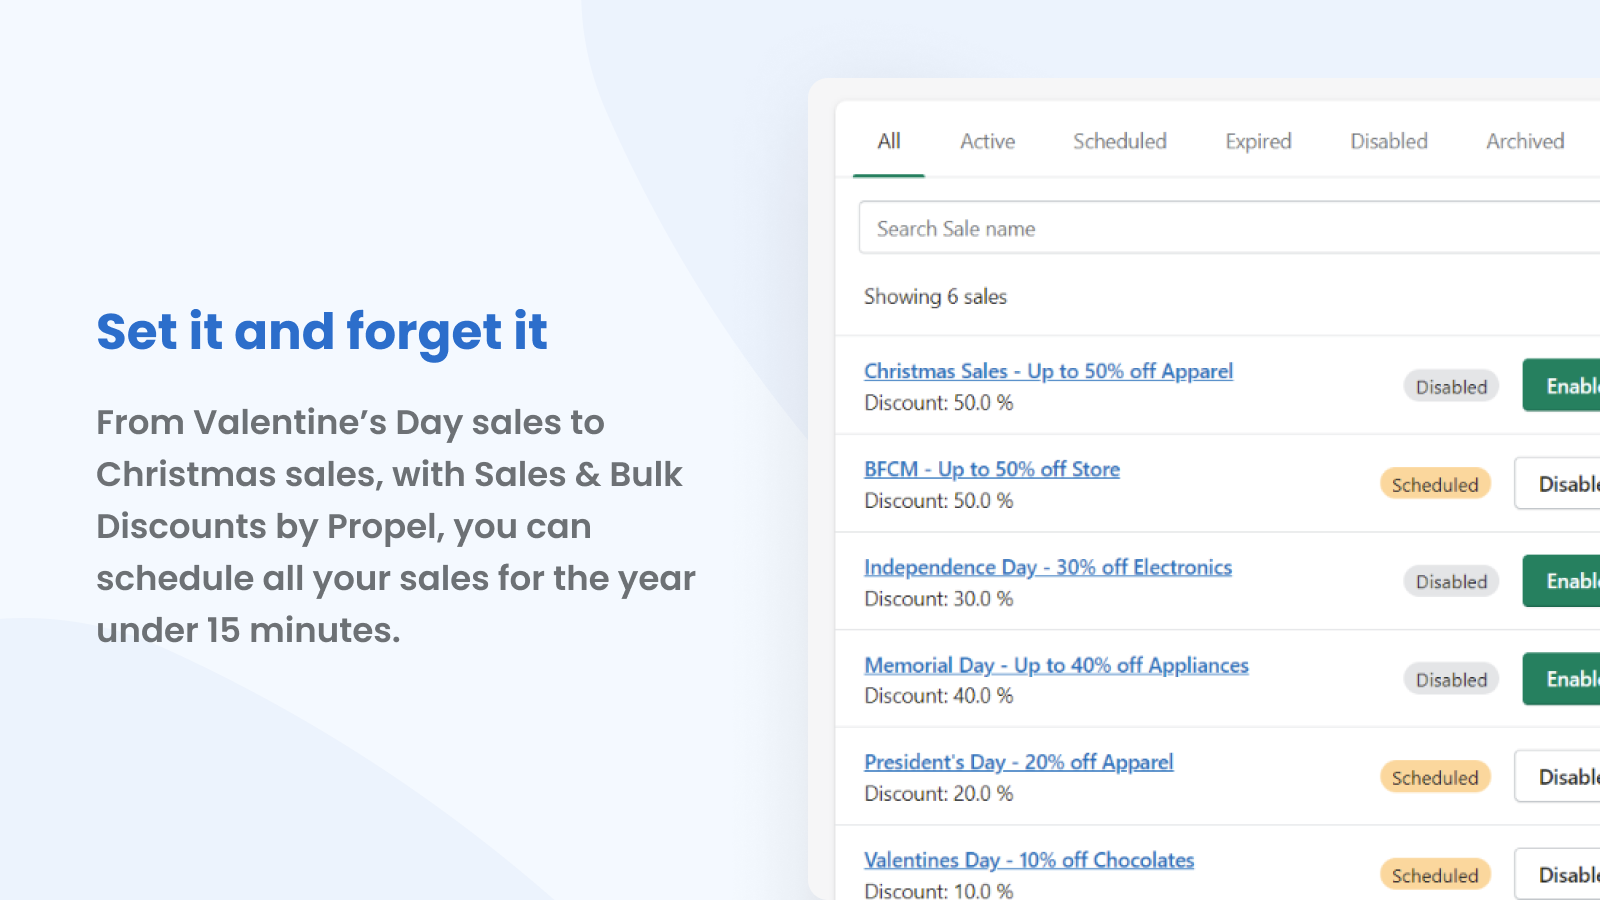 Schedule all your year's sales in under 15 minutes.